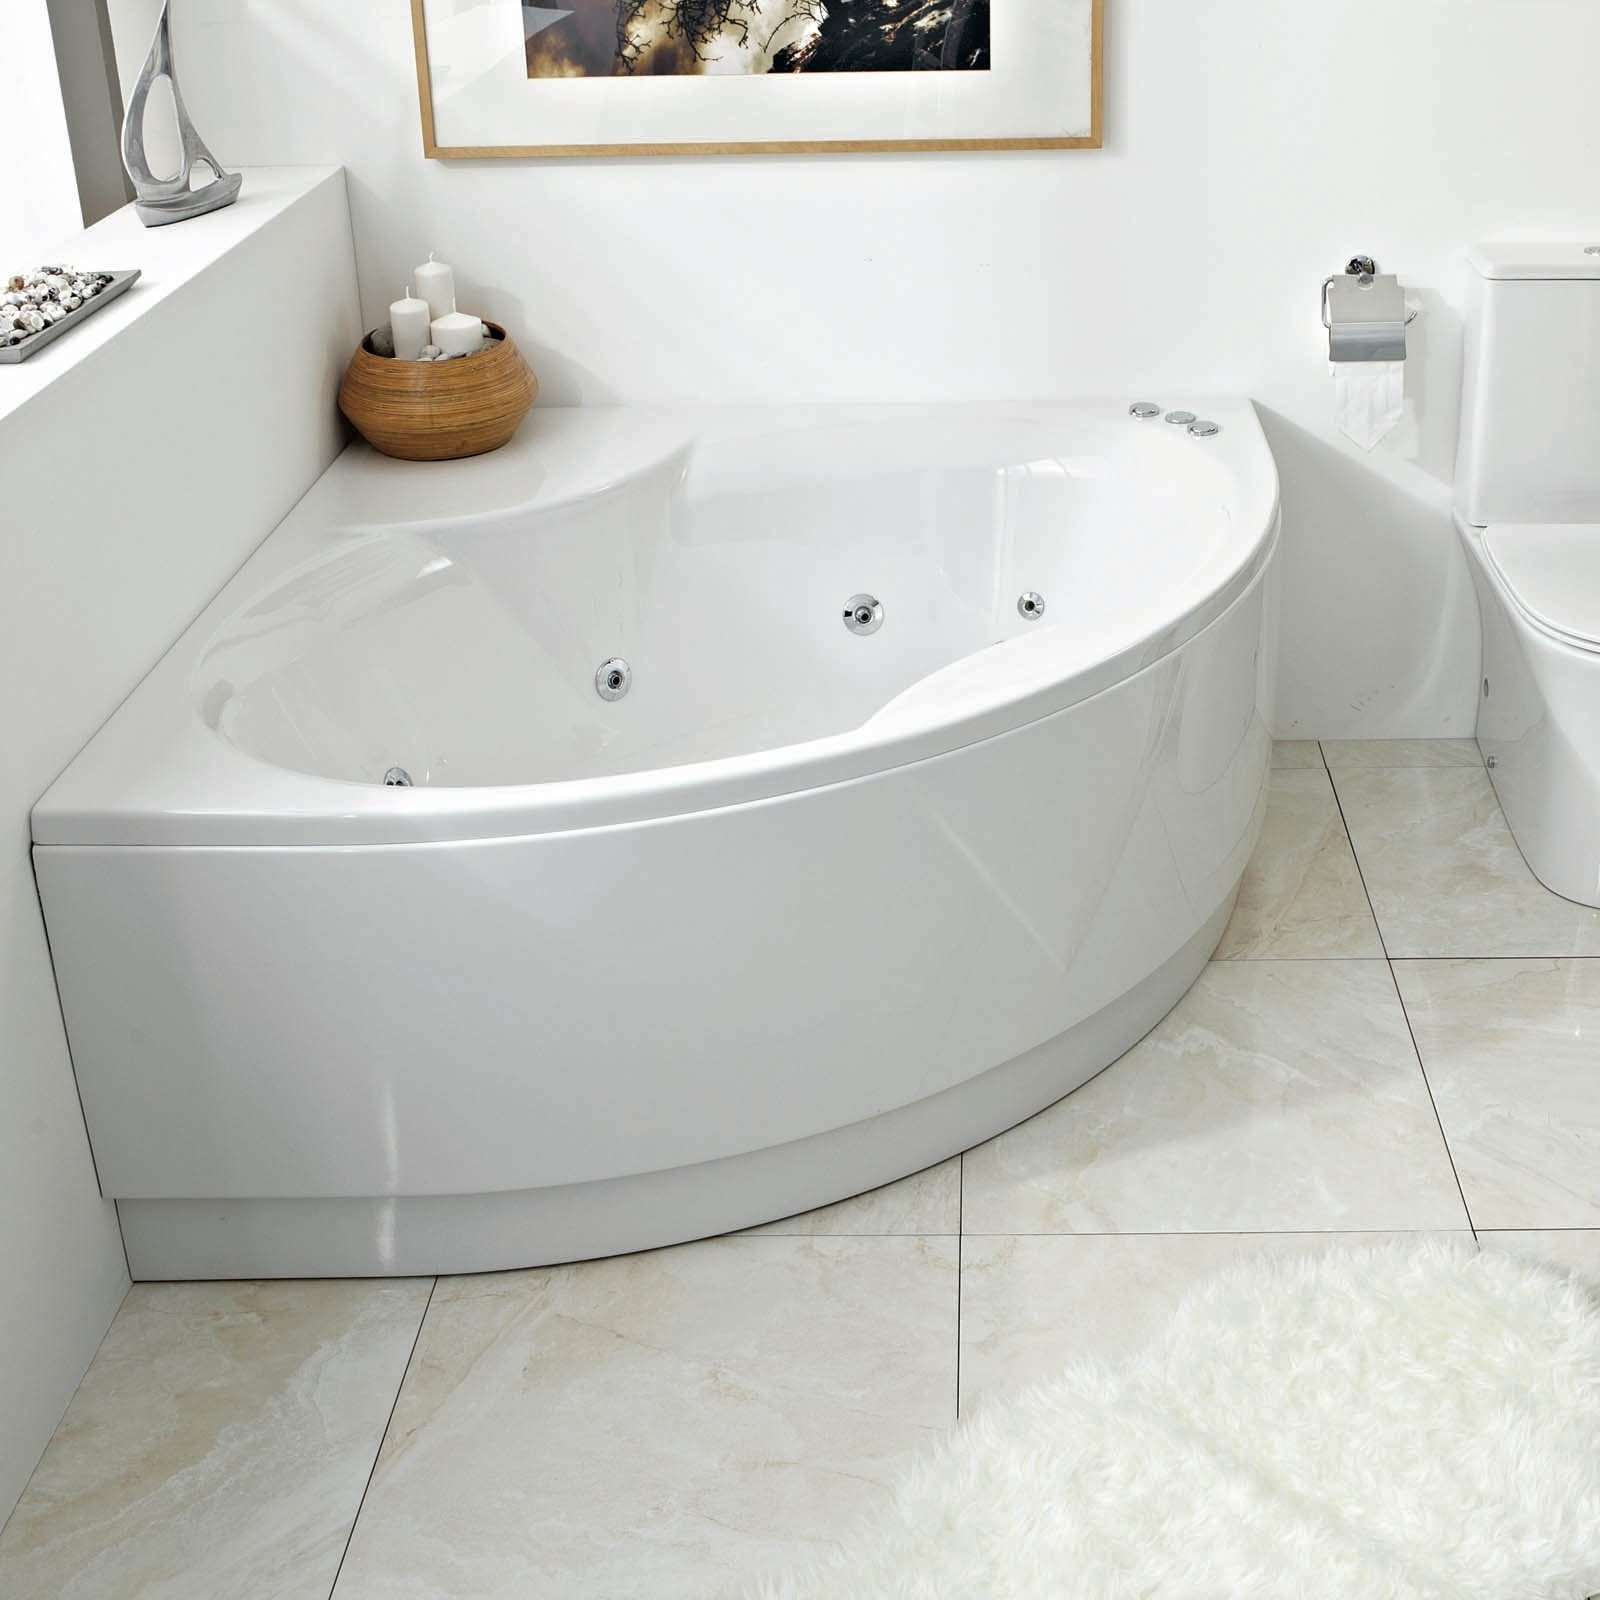 Corner Tubs For Small Bathrooms - Visual Hunt